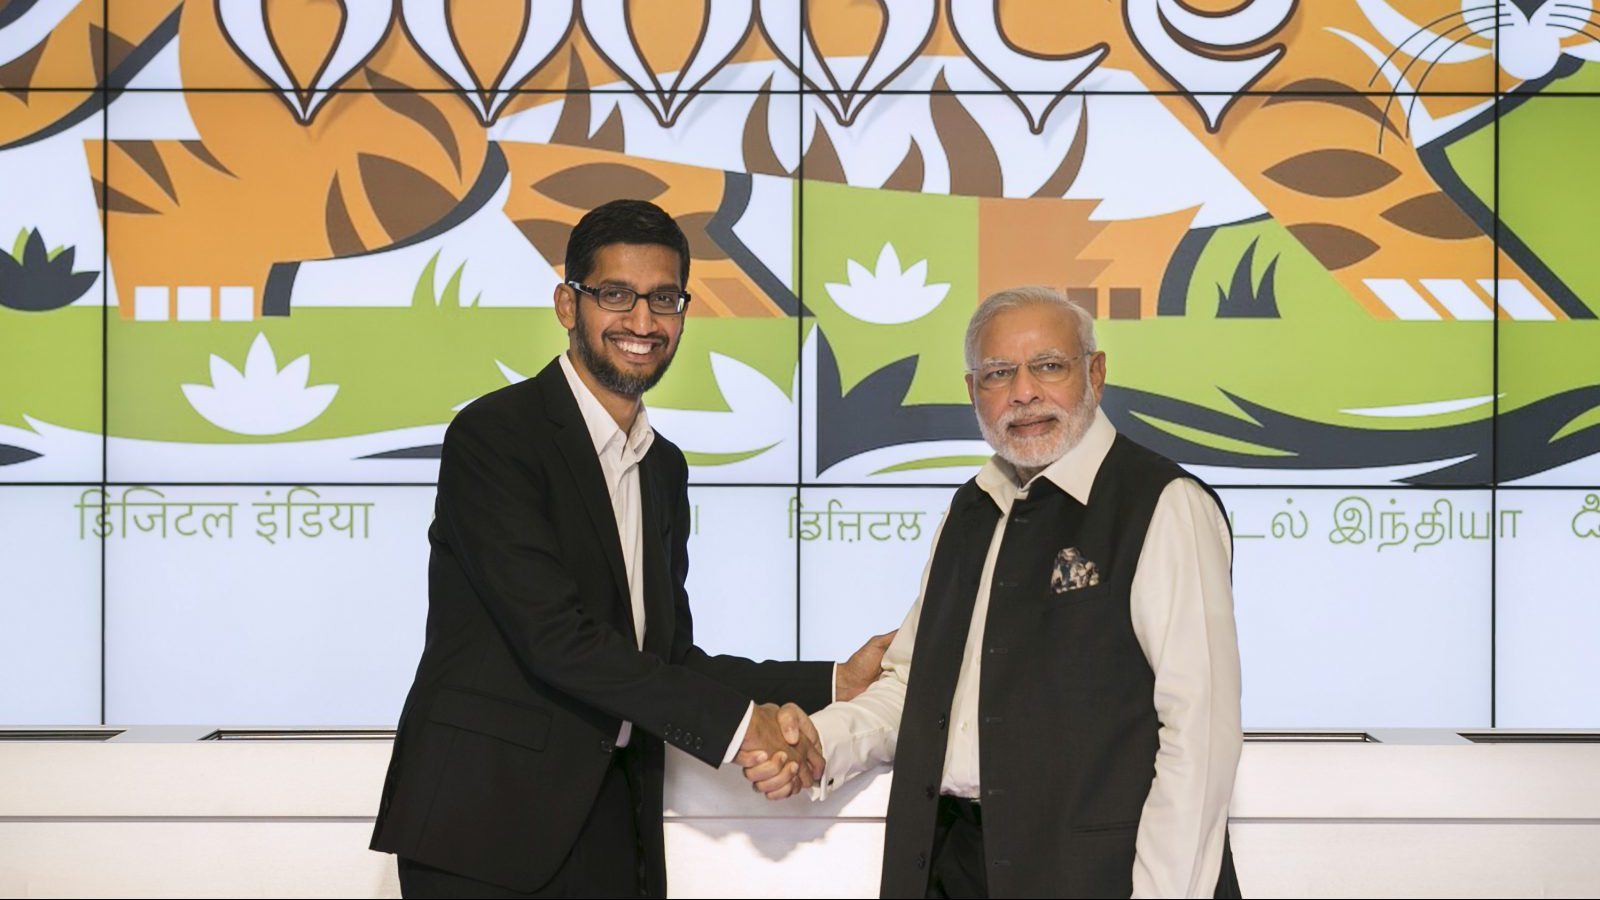 India's Prime Minister Narendra Modi (R) shakes hands with Google CEO Sundar Pichai at the Google campus in Mountain View, California September 27, 2015.